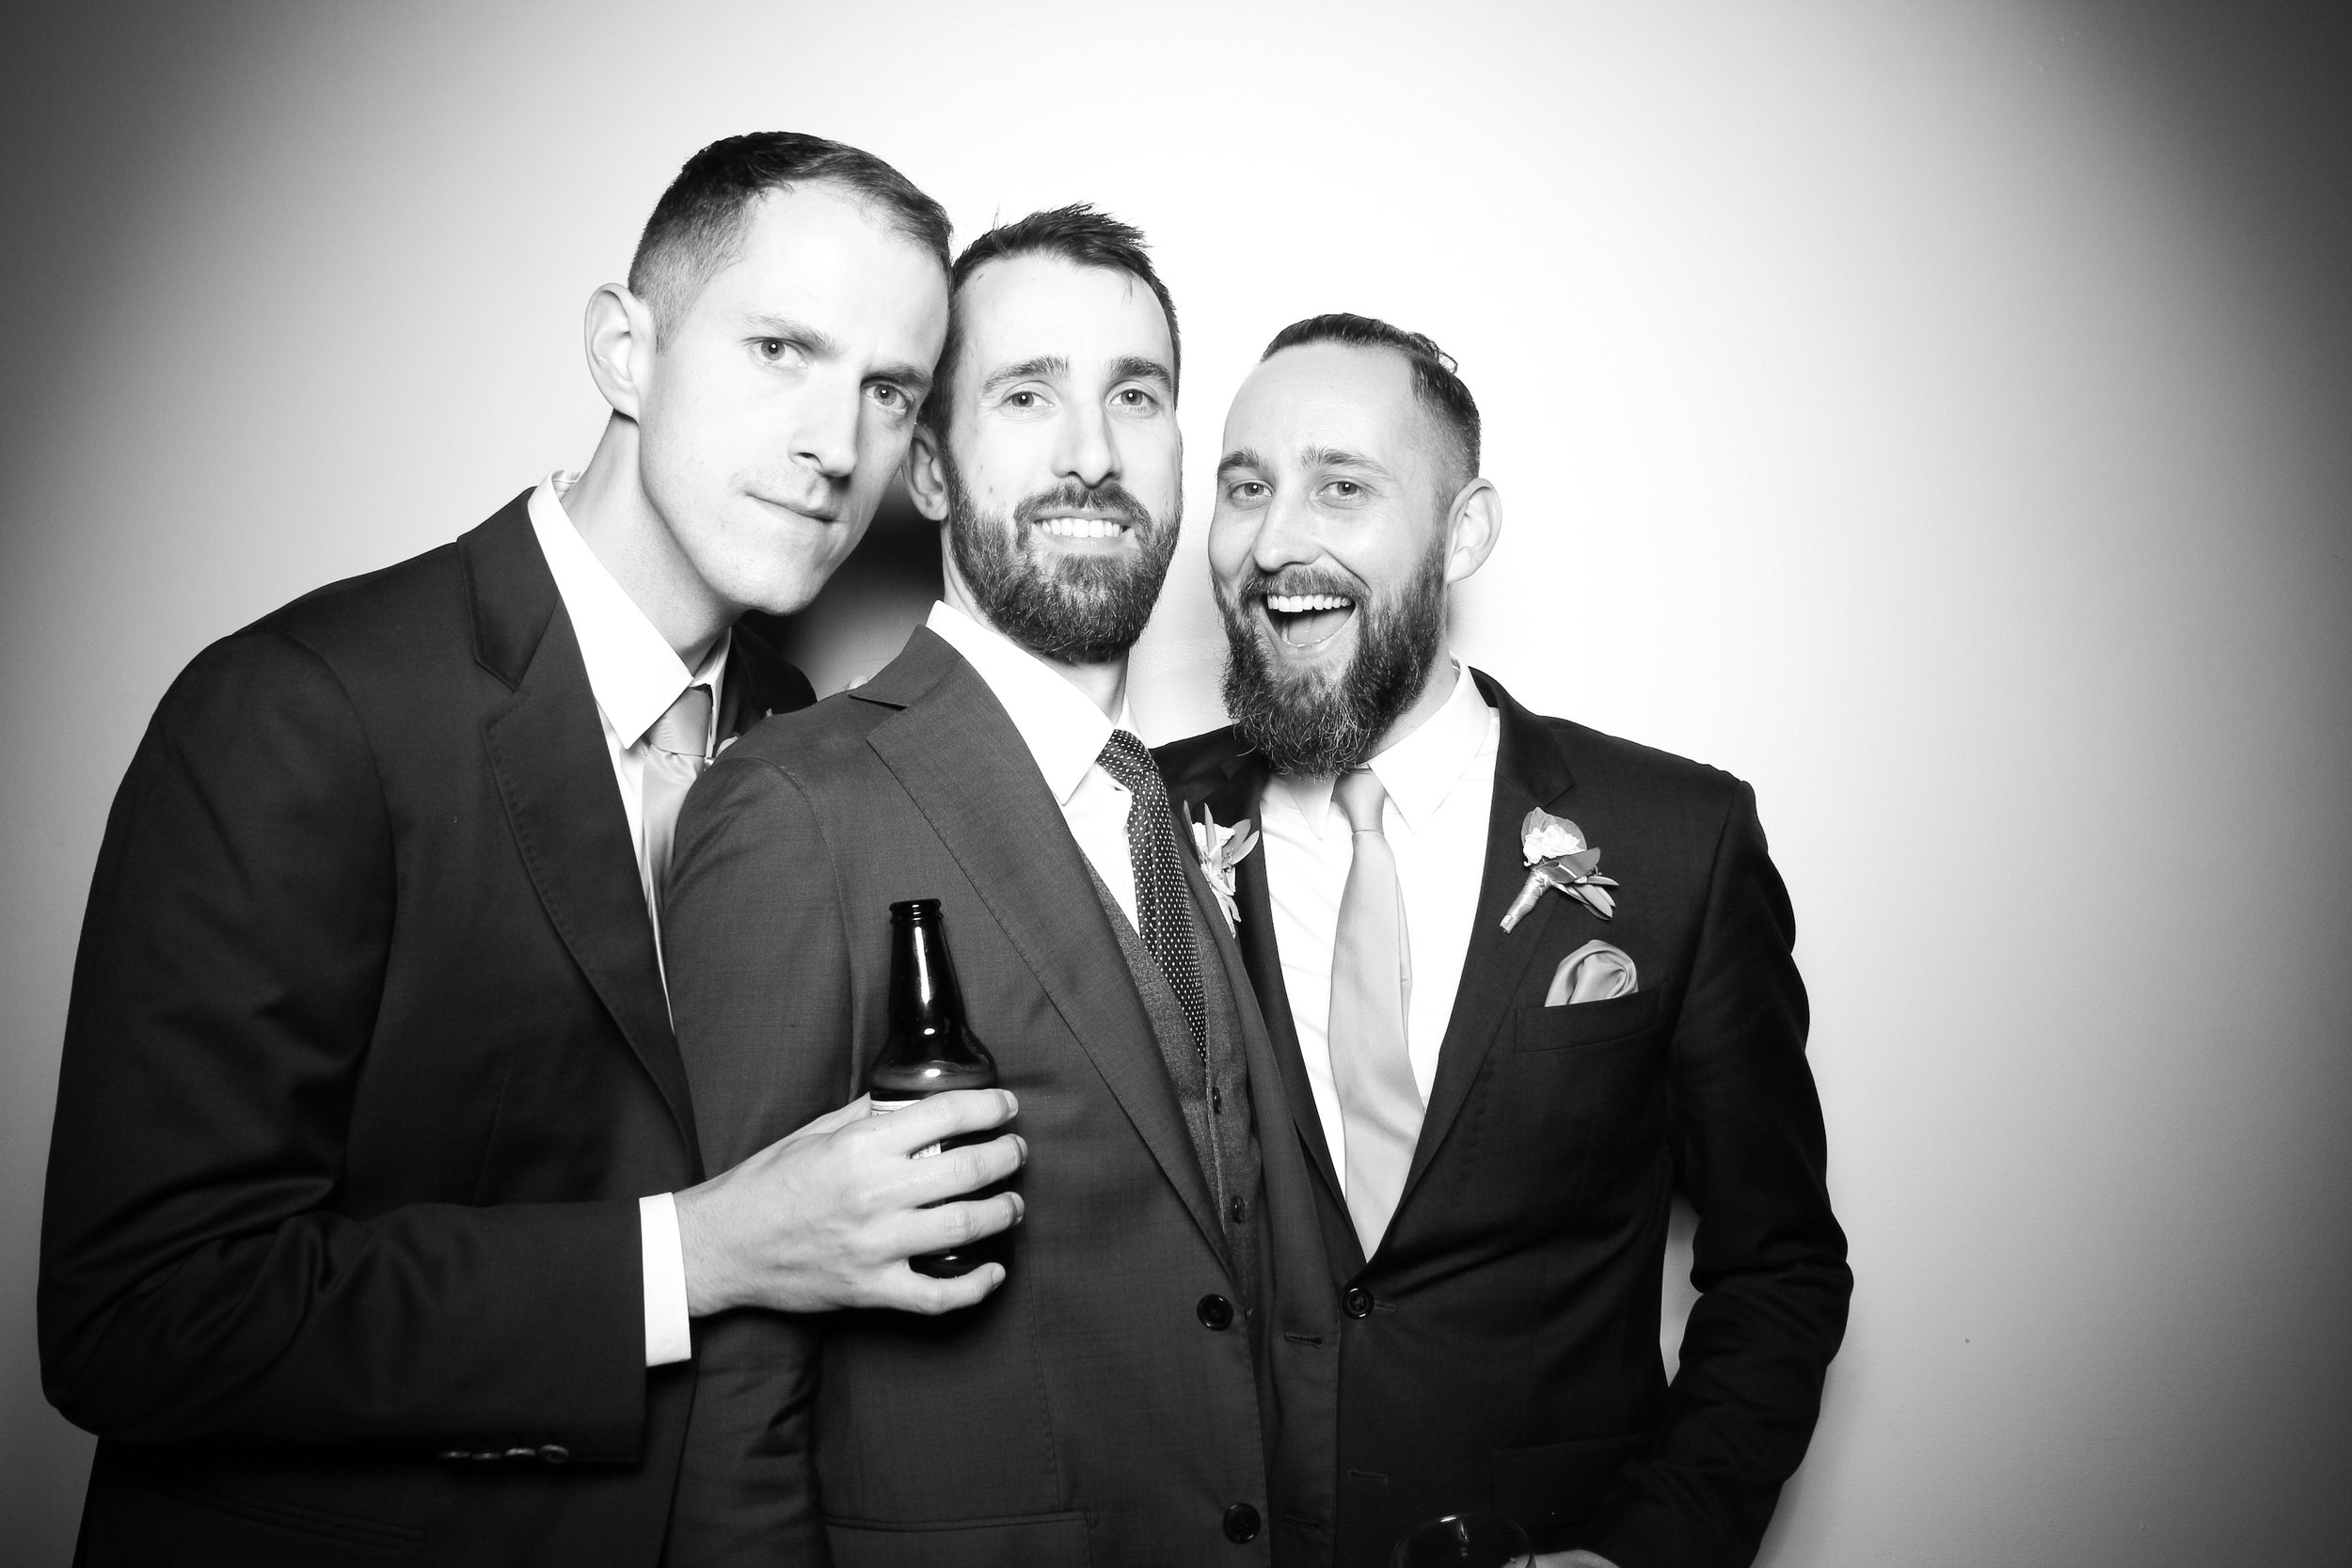 Chicago_Vintage_Wedding_Photobooth_Ravenswood_23.jpg